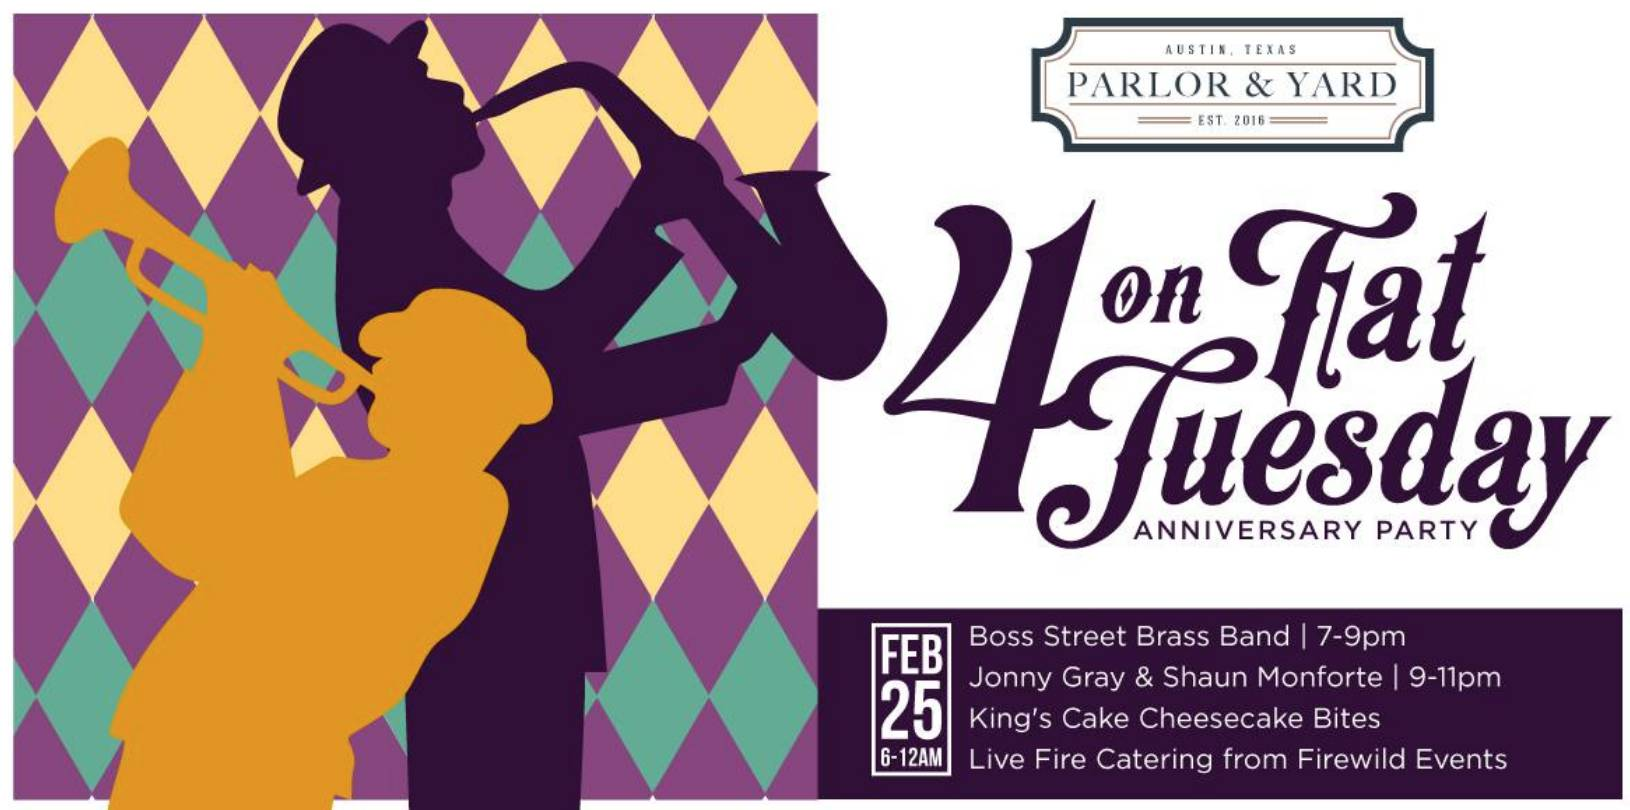 Parlor & Yard turns 4 on Fat Tuesday!